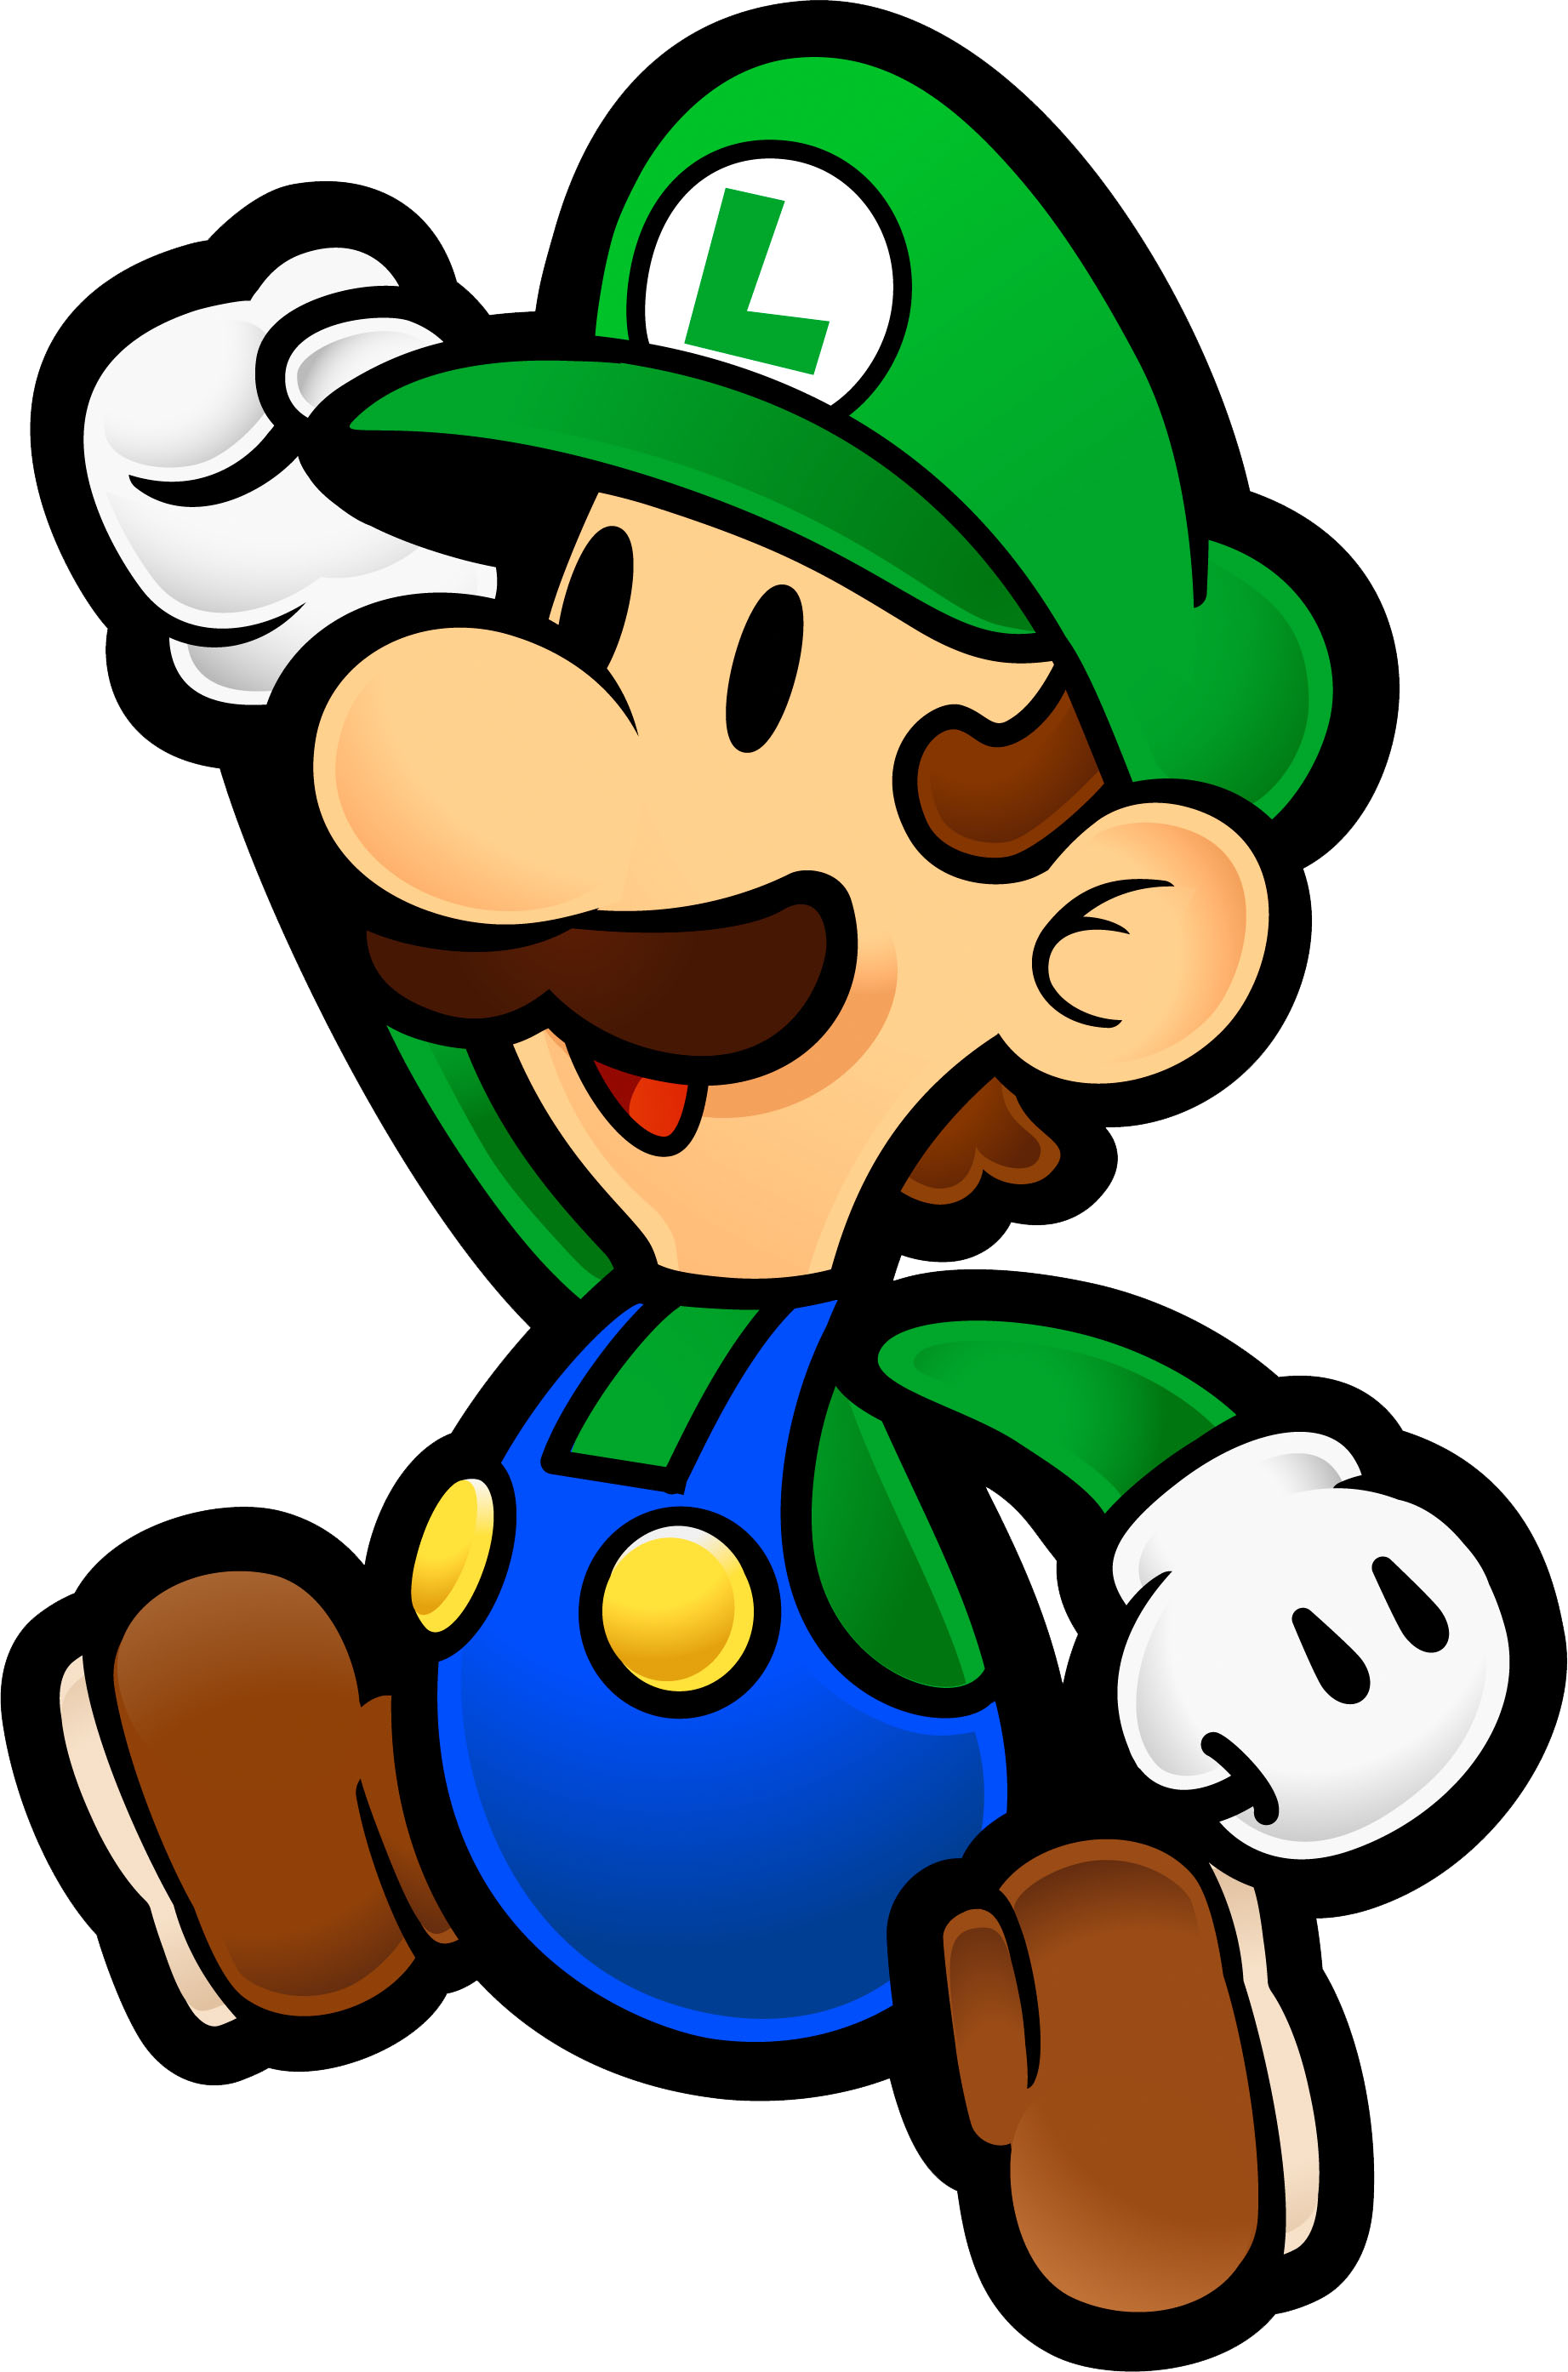 Another_artwork_of_Paper_Luigi.png